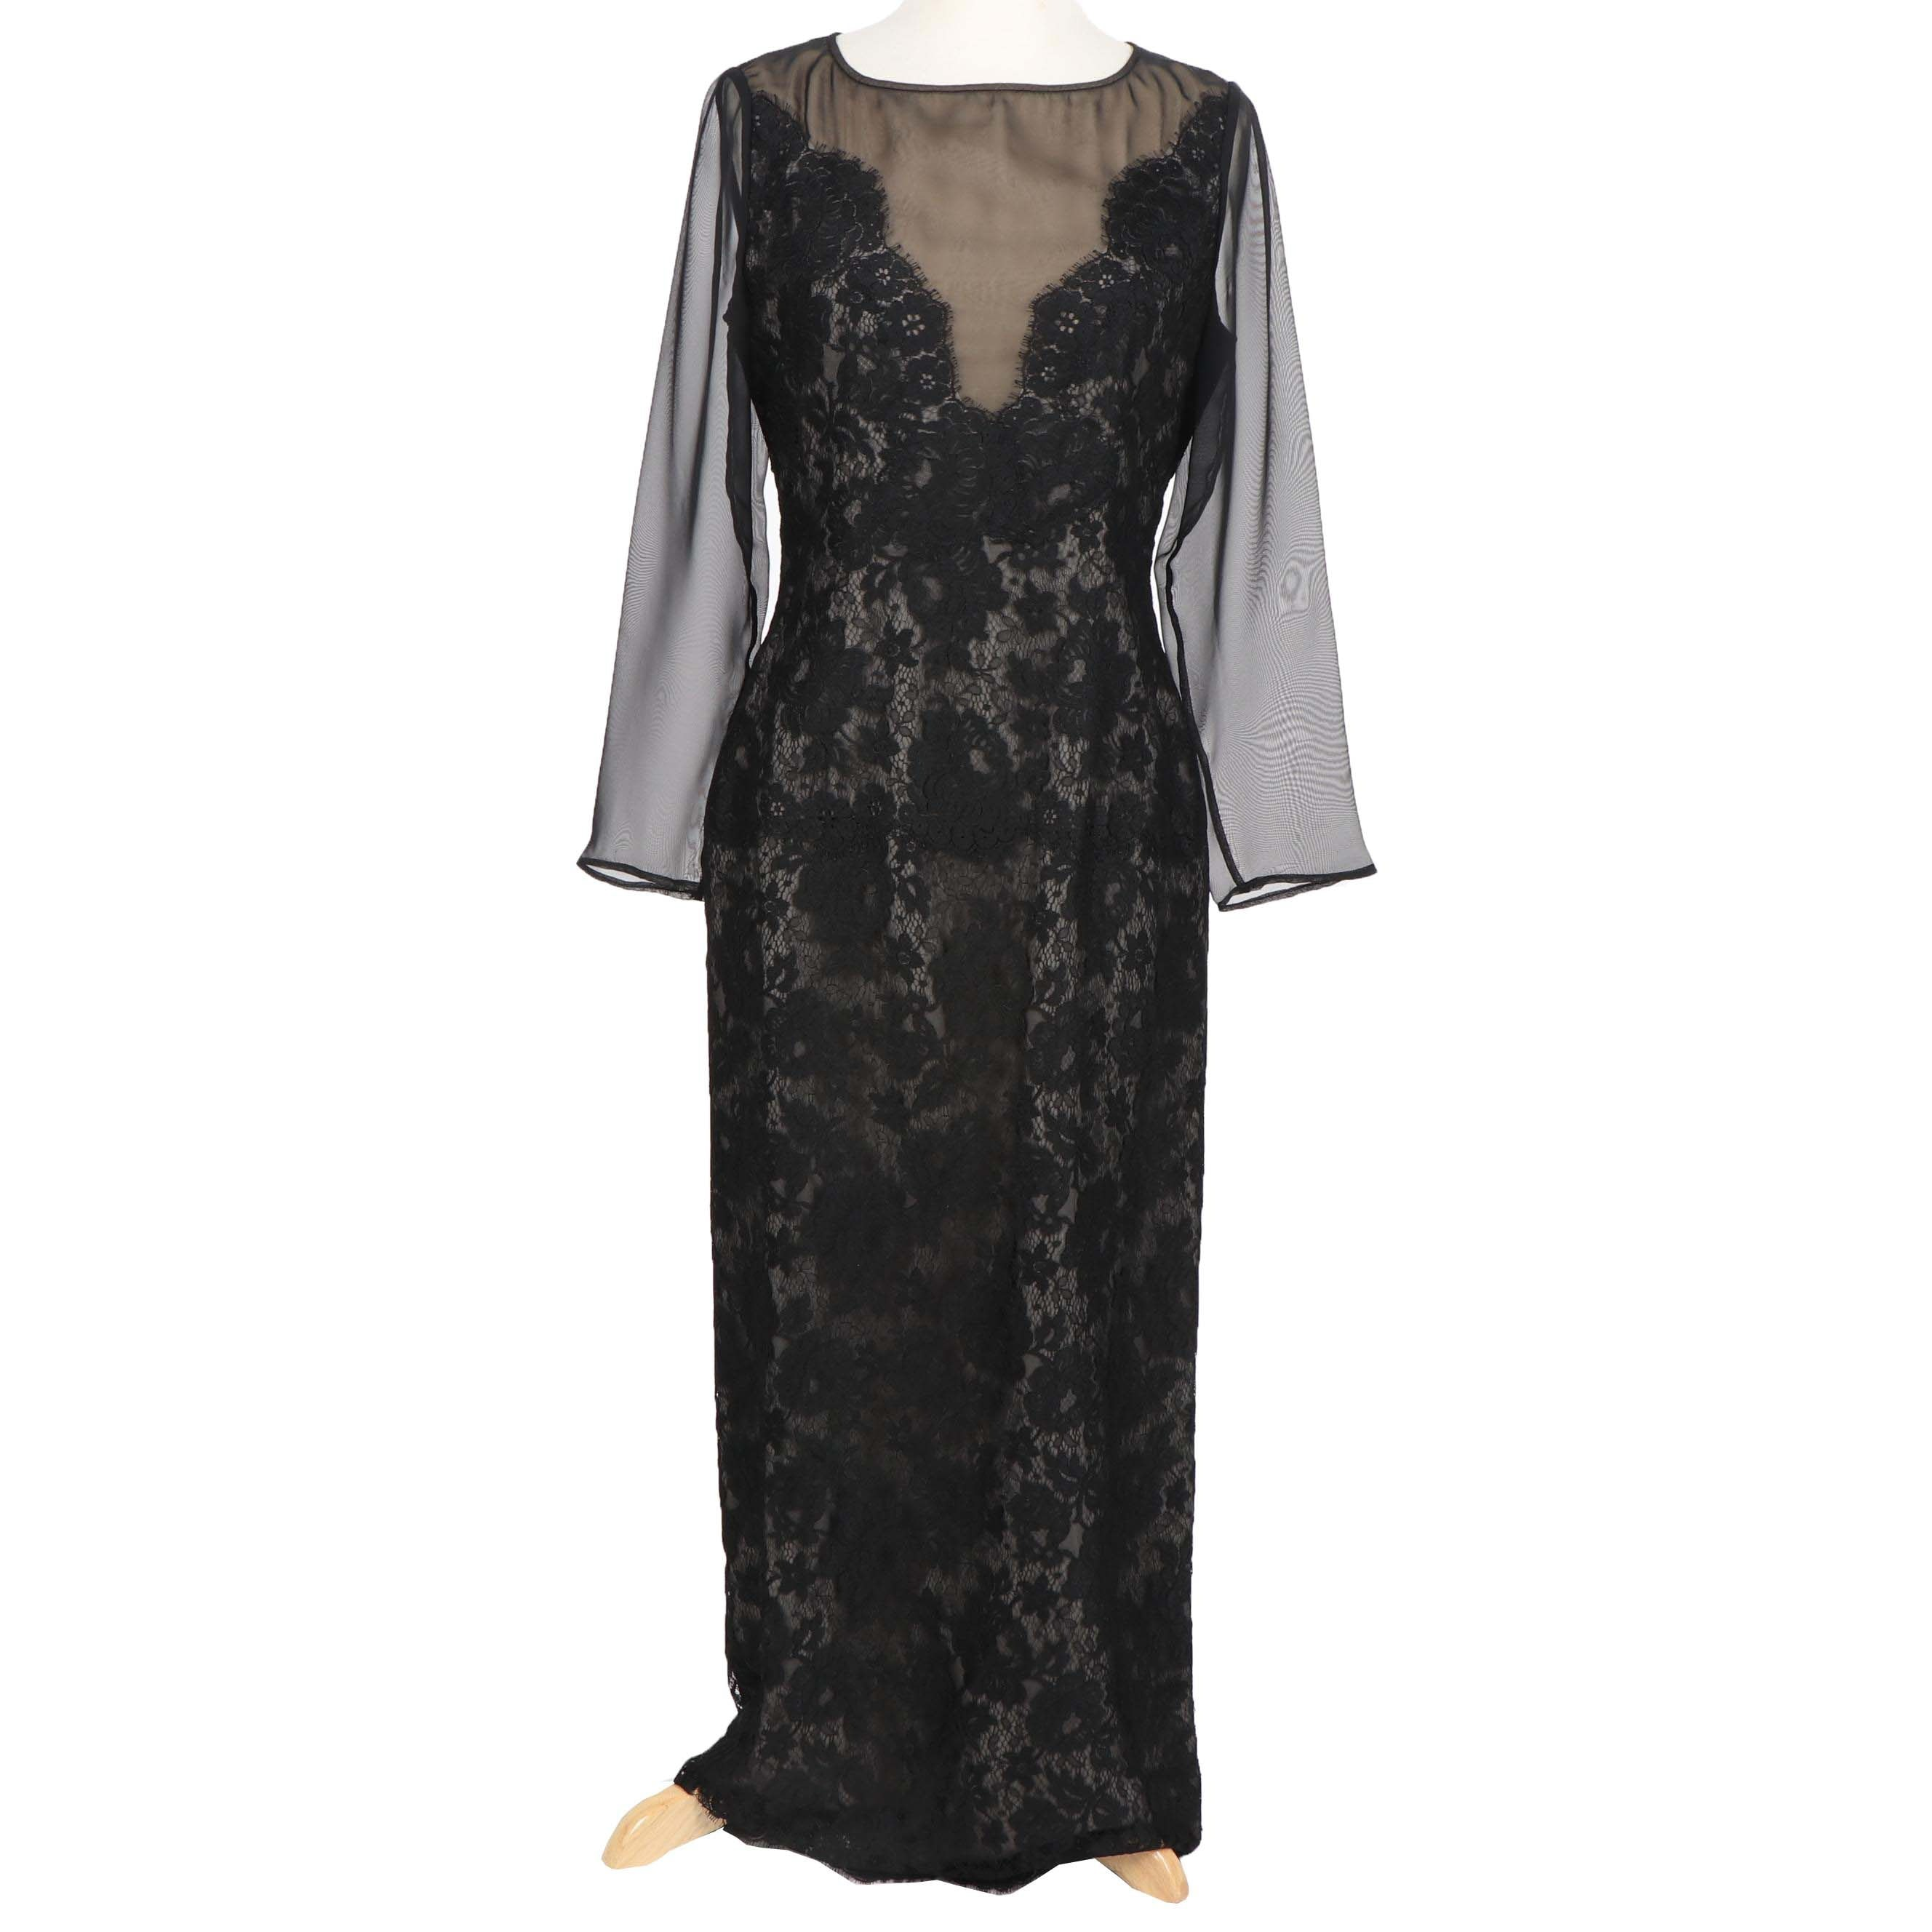 William Pearson Black Lace Cocktail Dress